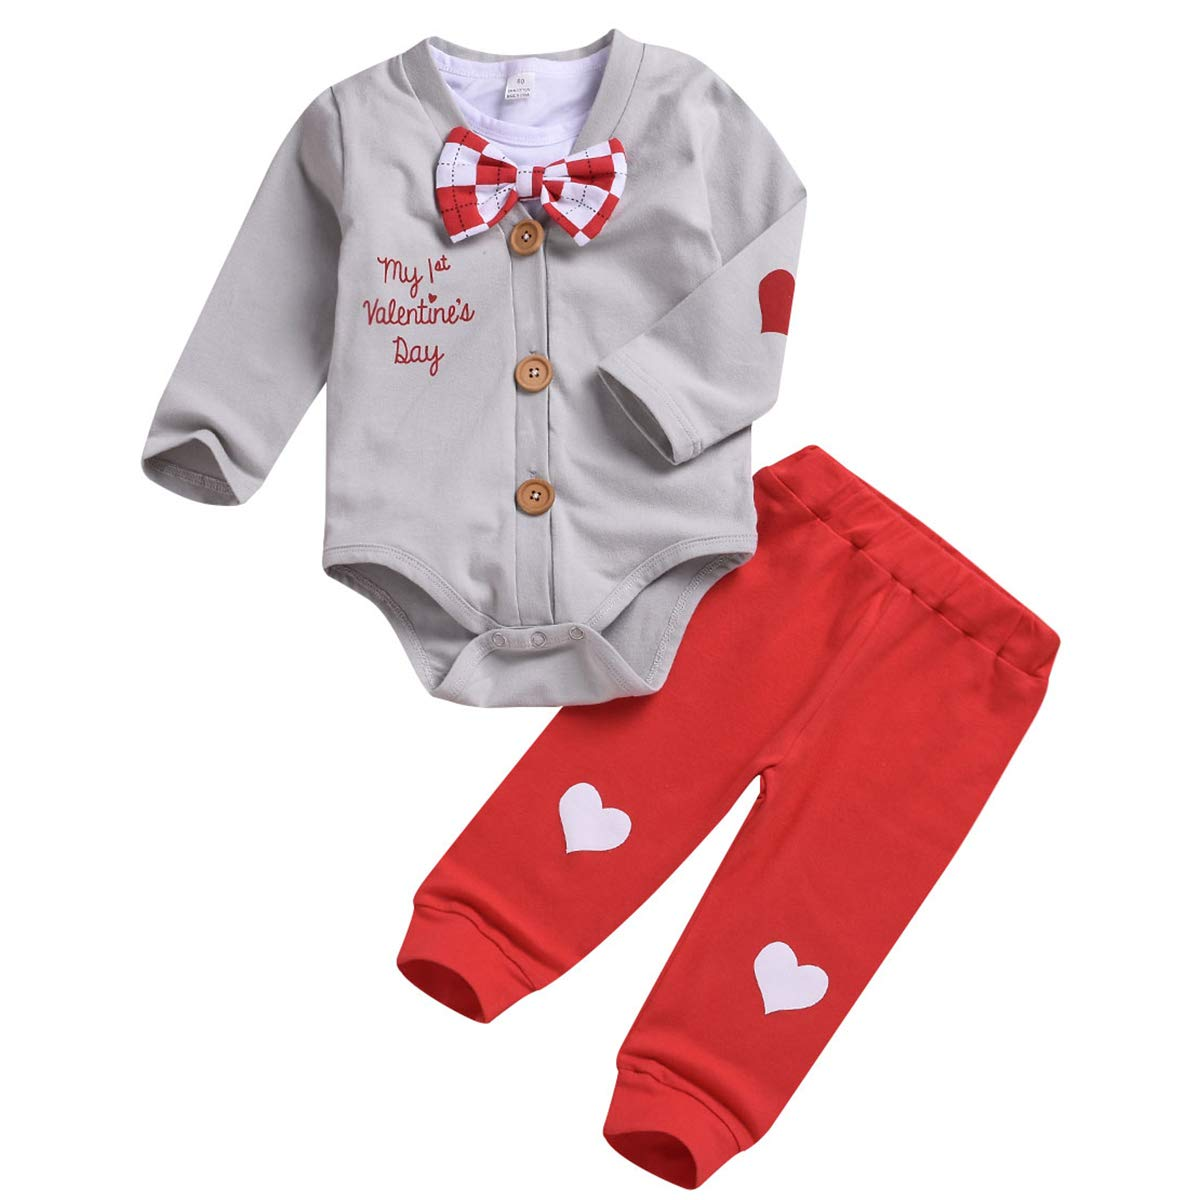 Camidy Infant Newborn Baby Boy Valentines Day Outfits Romper+Pants Gentleman Clothes